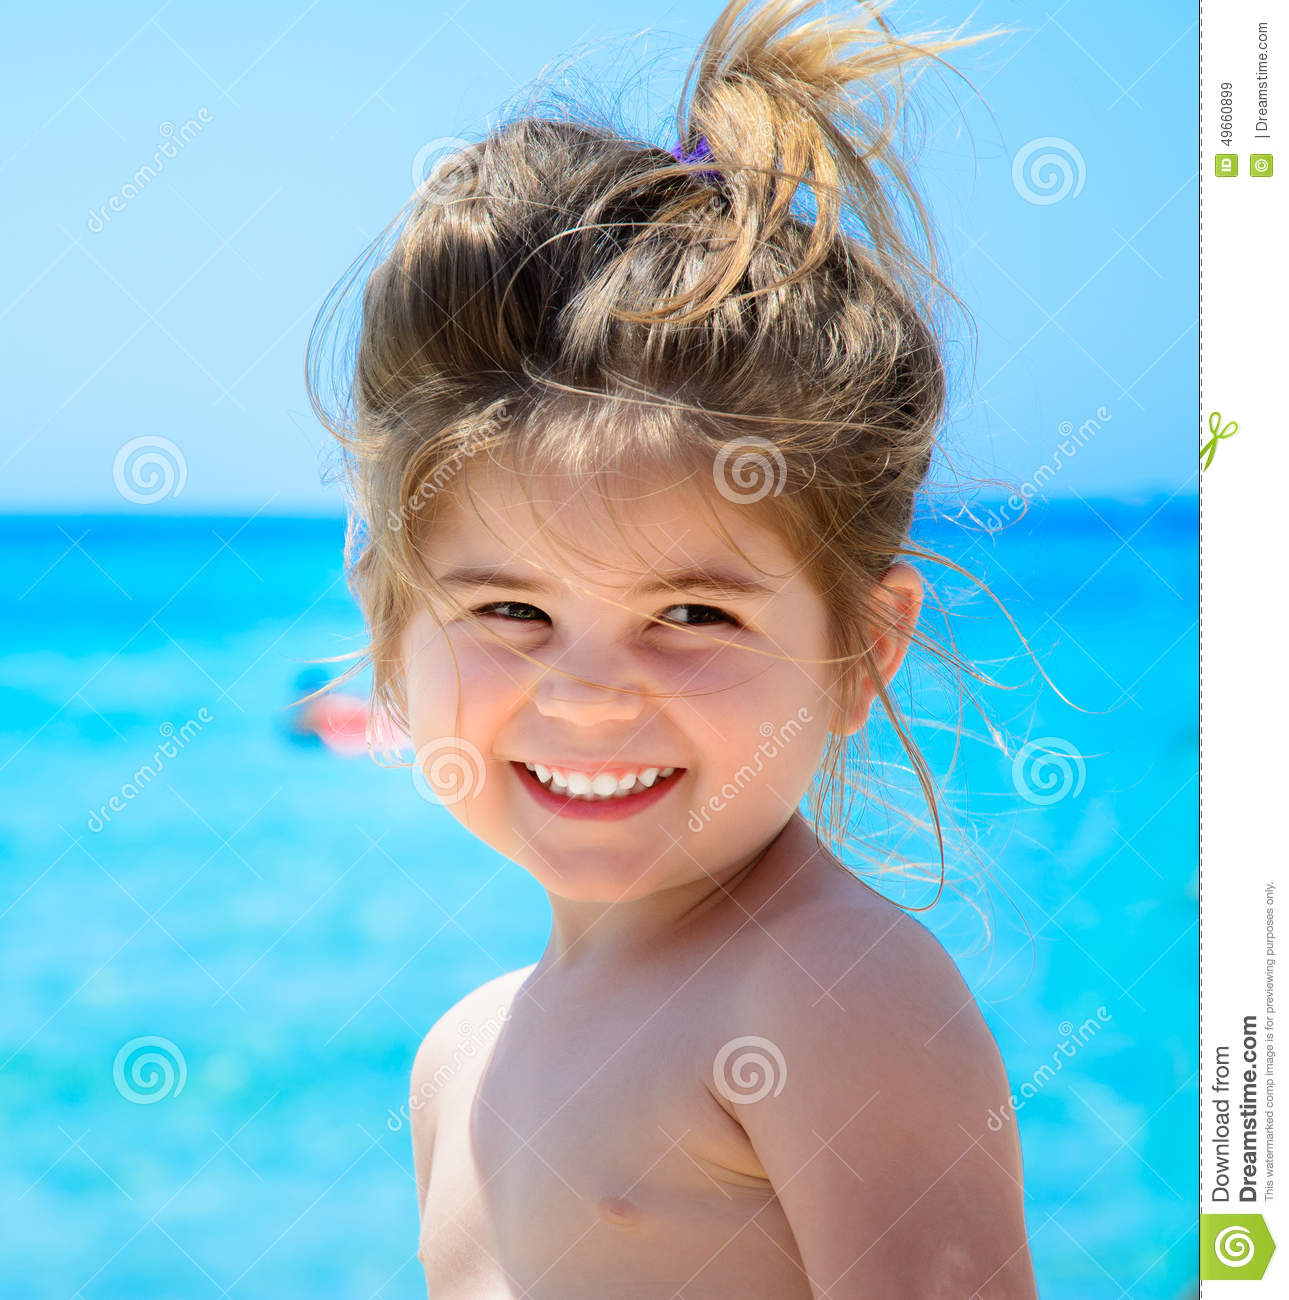 Beach Tropical Vacation Kid Blond Girl With Fashion: Adorable Happy Smiling Little Girl On Beach Vacation Stock